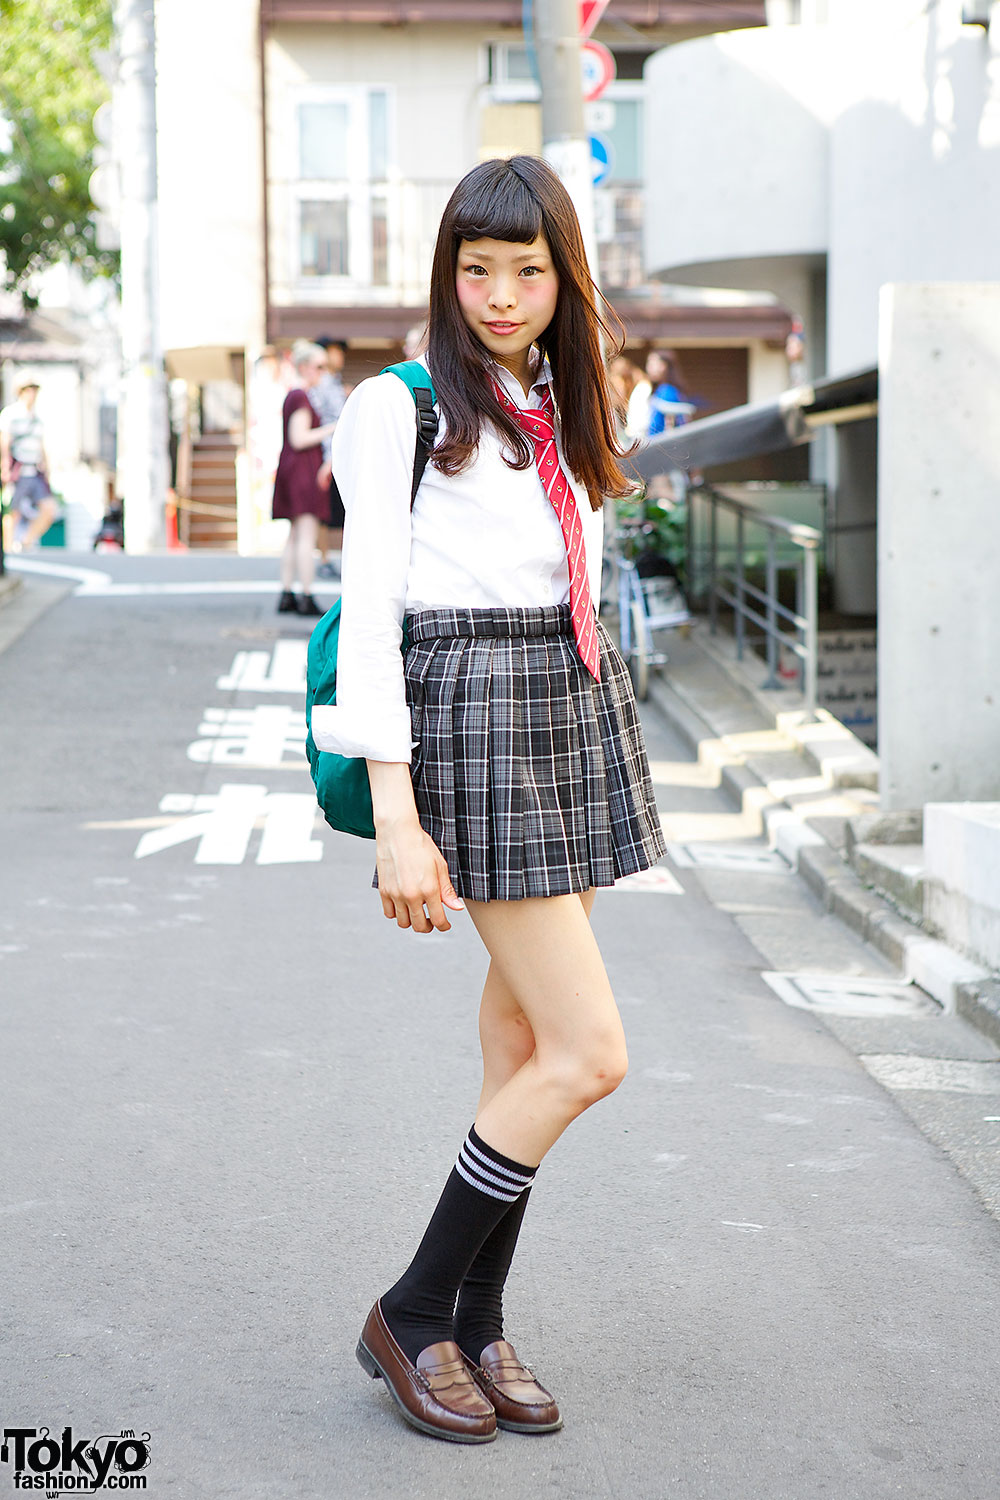 Cute Japanese School Uniform W Plaid Skirt Red Tie Loafers